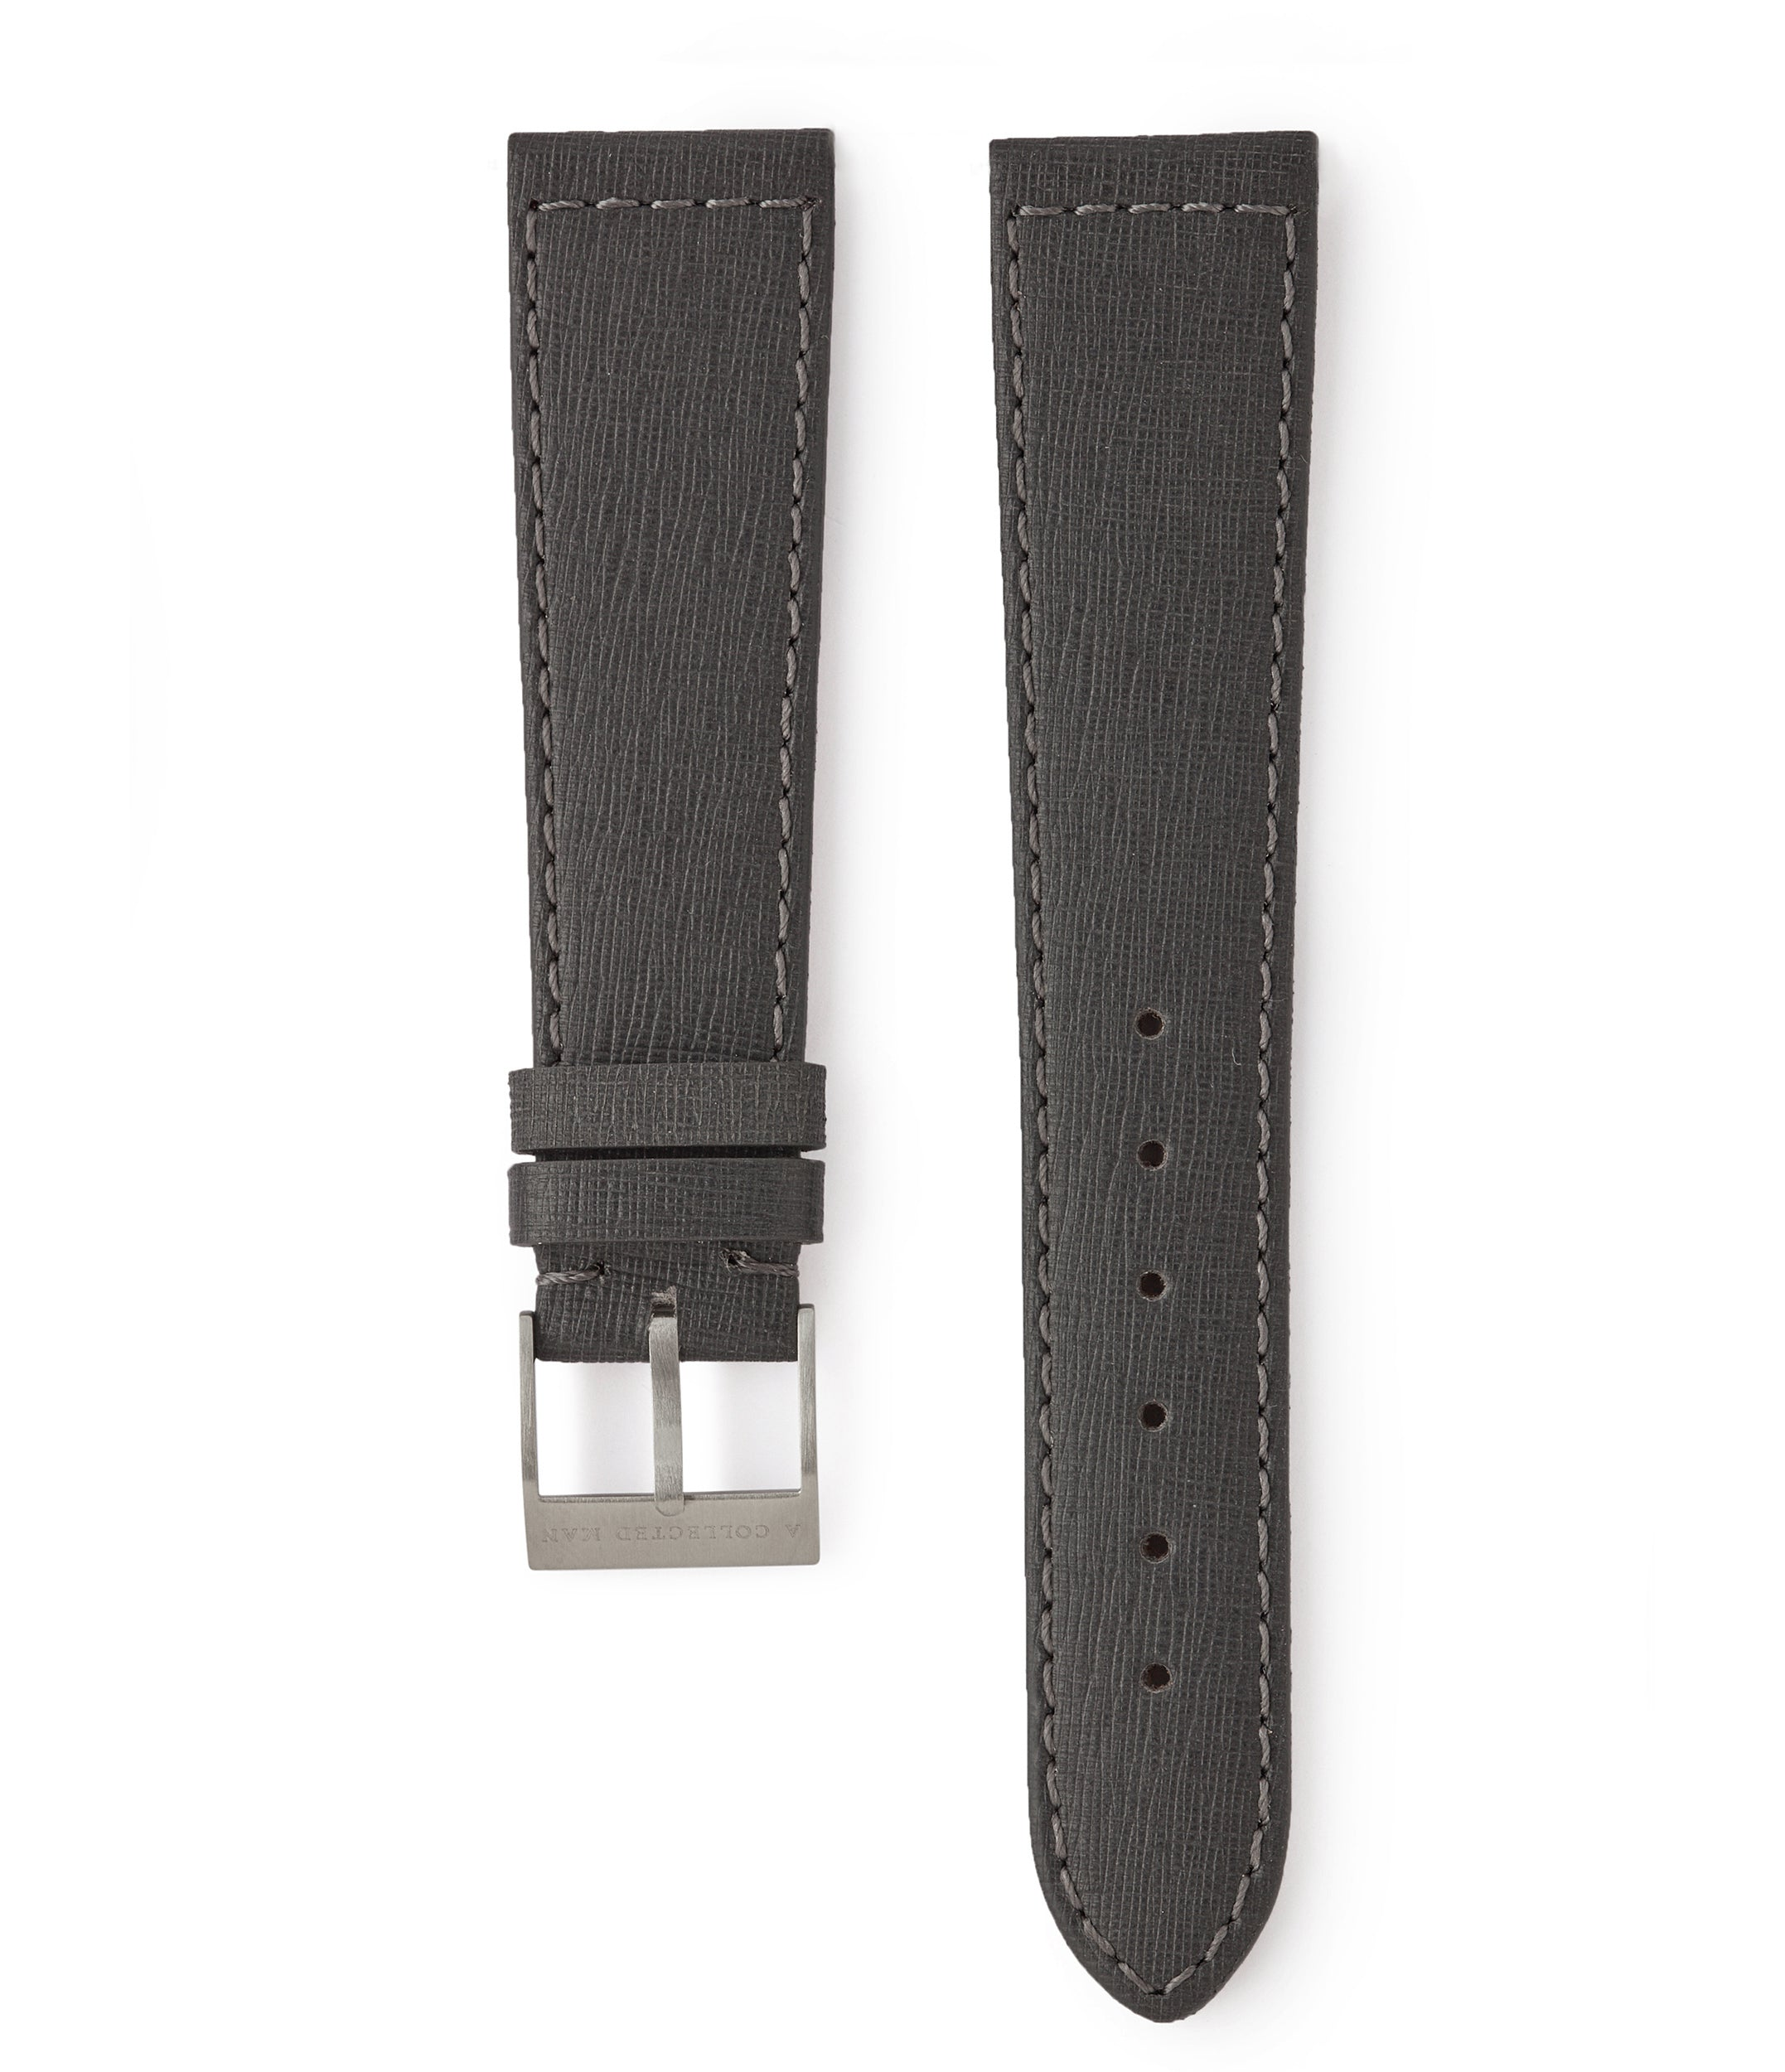 buy grey Saffiano Venice grained luxury leather watch strap 18mm for sale online at A Collected Man London